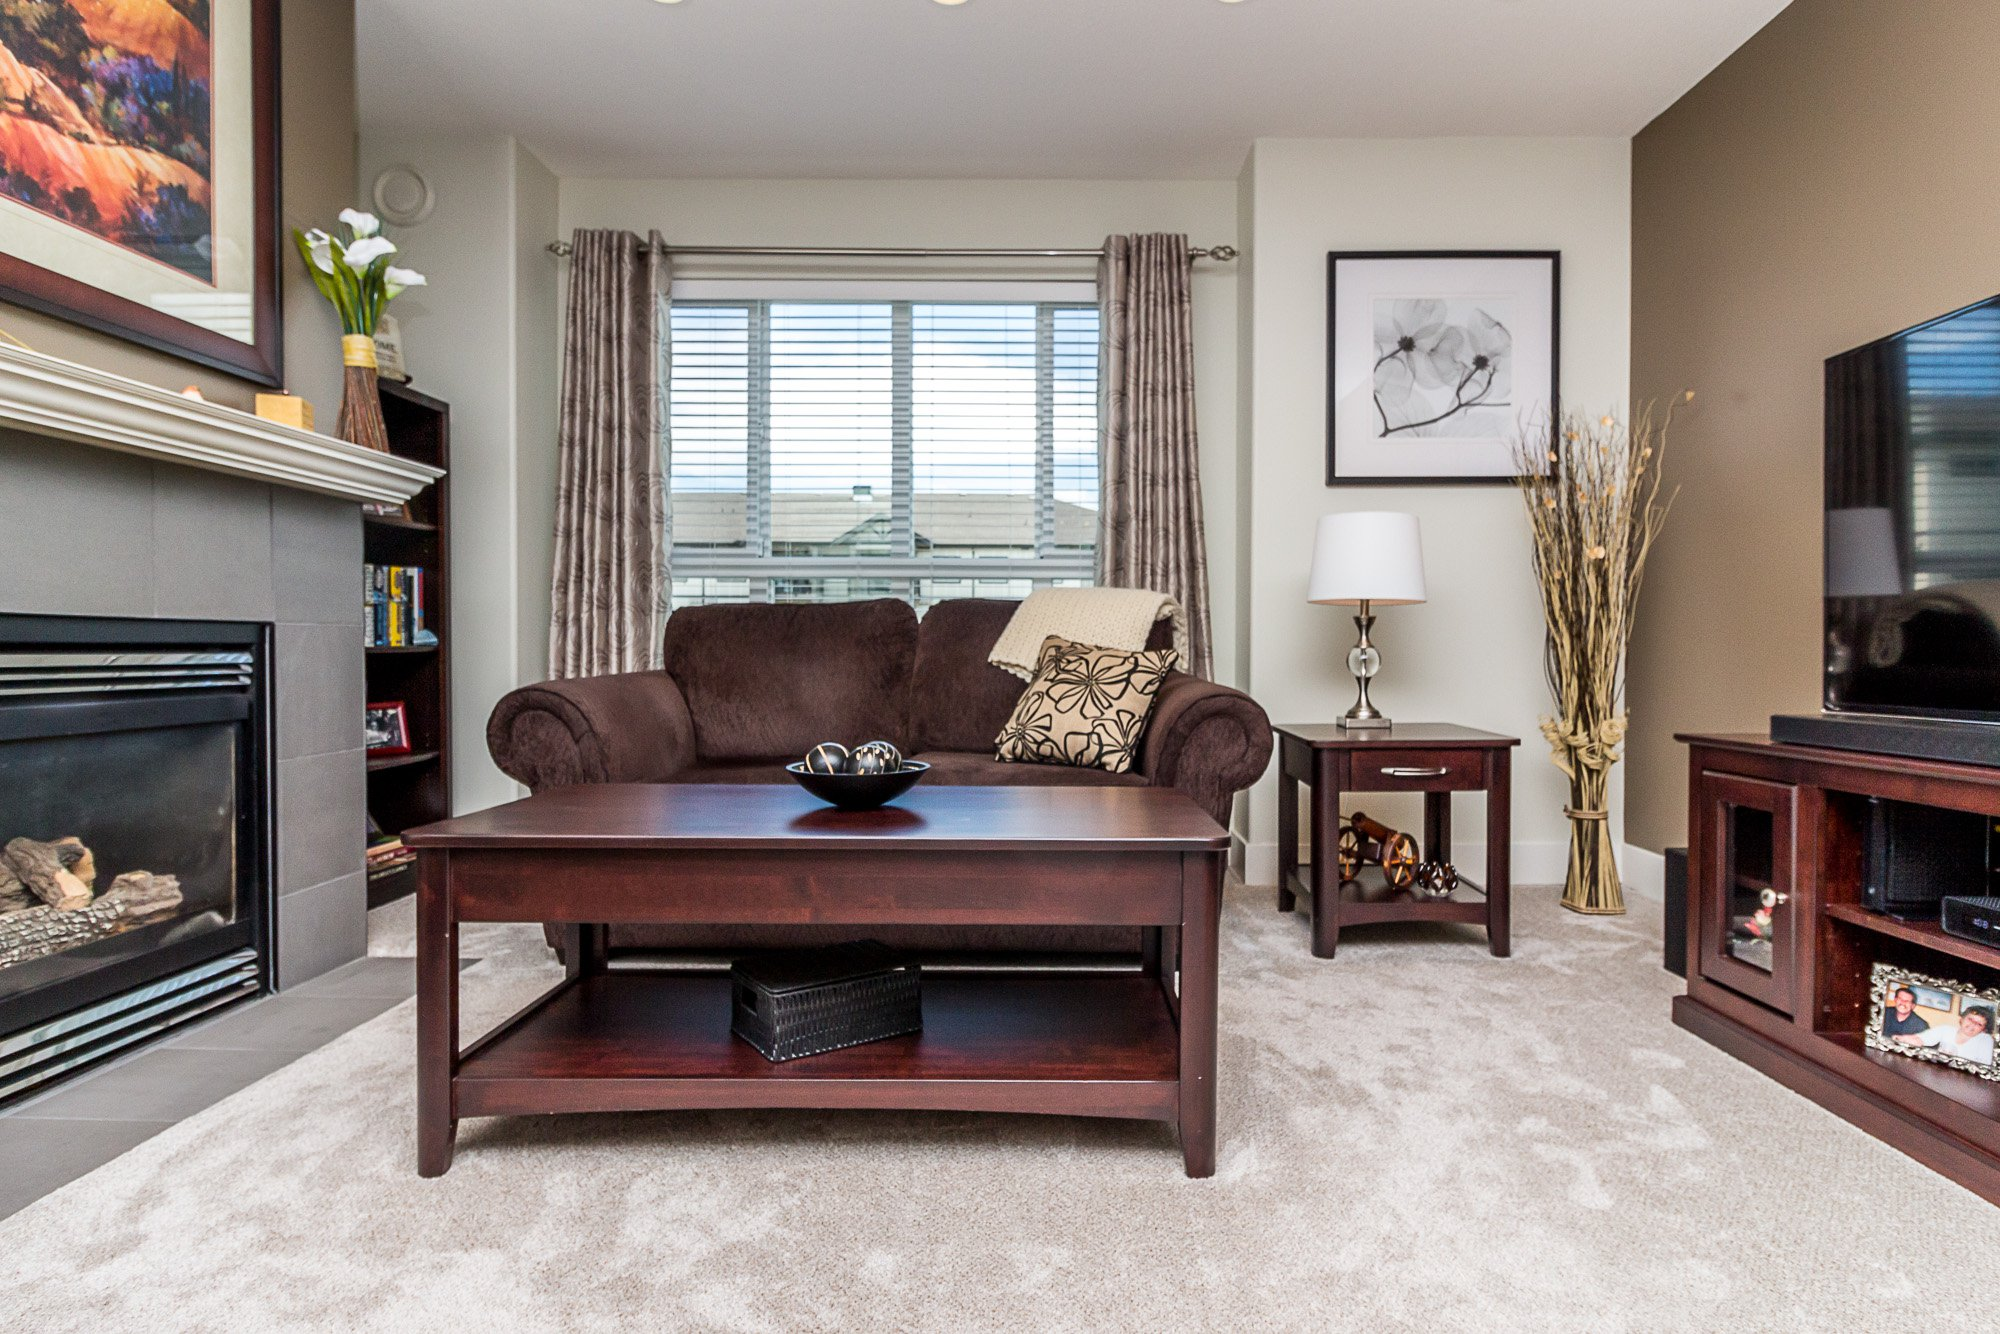 """Photo 4: Photos: 412 22022 49 Avenue in Langley: Murrayville Condo for sale in """"Murray Green"""" : MLS®# R2266359"""